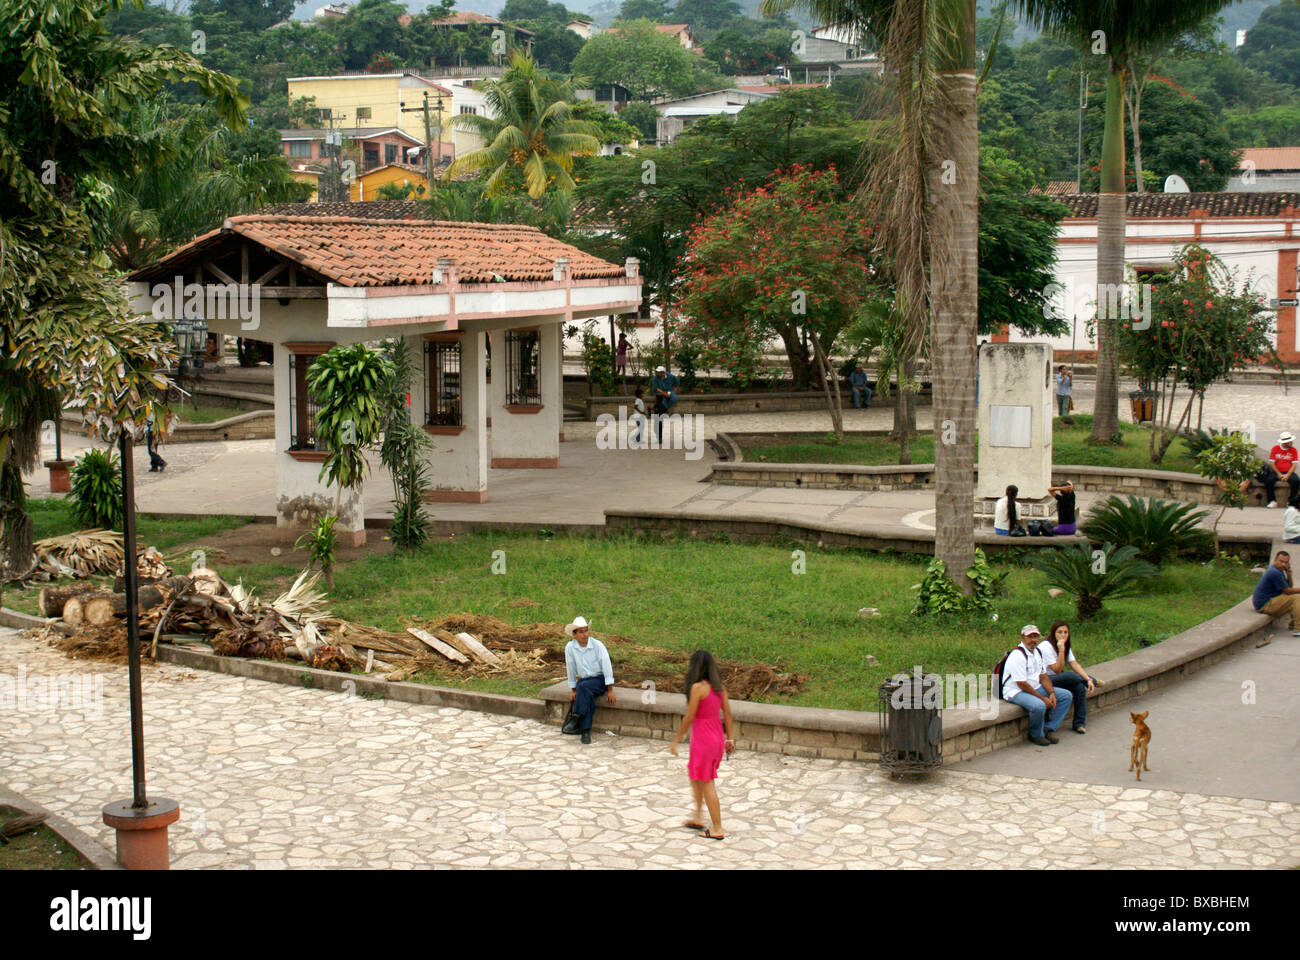 Main square in the town of Copan Ruinas, Honduras, Central America - Stock Image